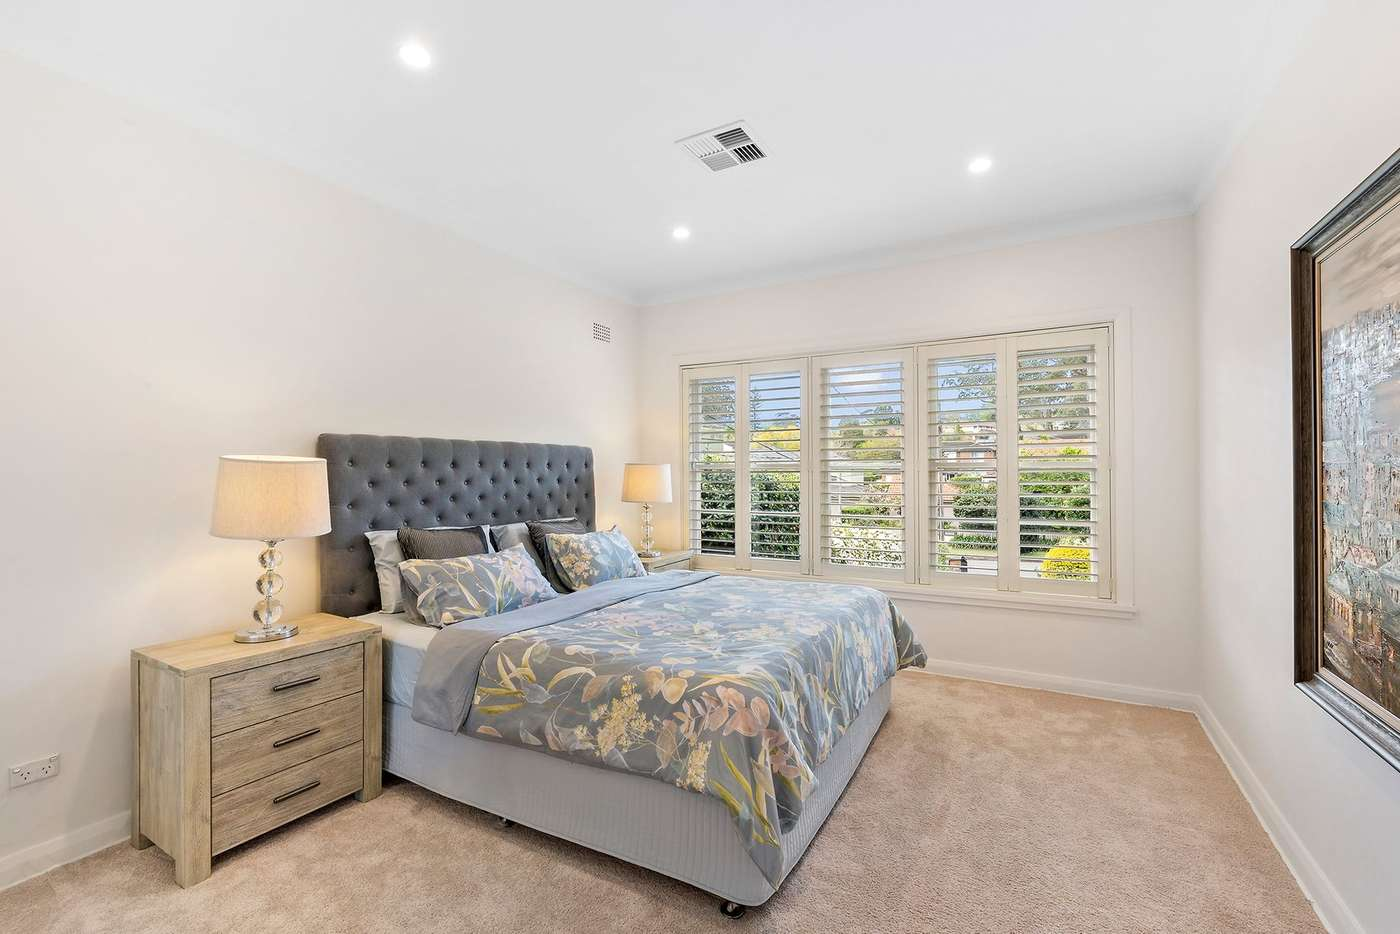 Fifth view of Homely house listing, 24 Bannockburn Road, Pymble NSW 2073